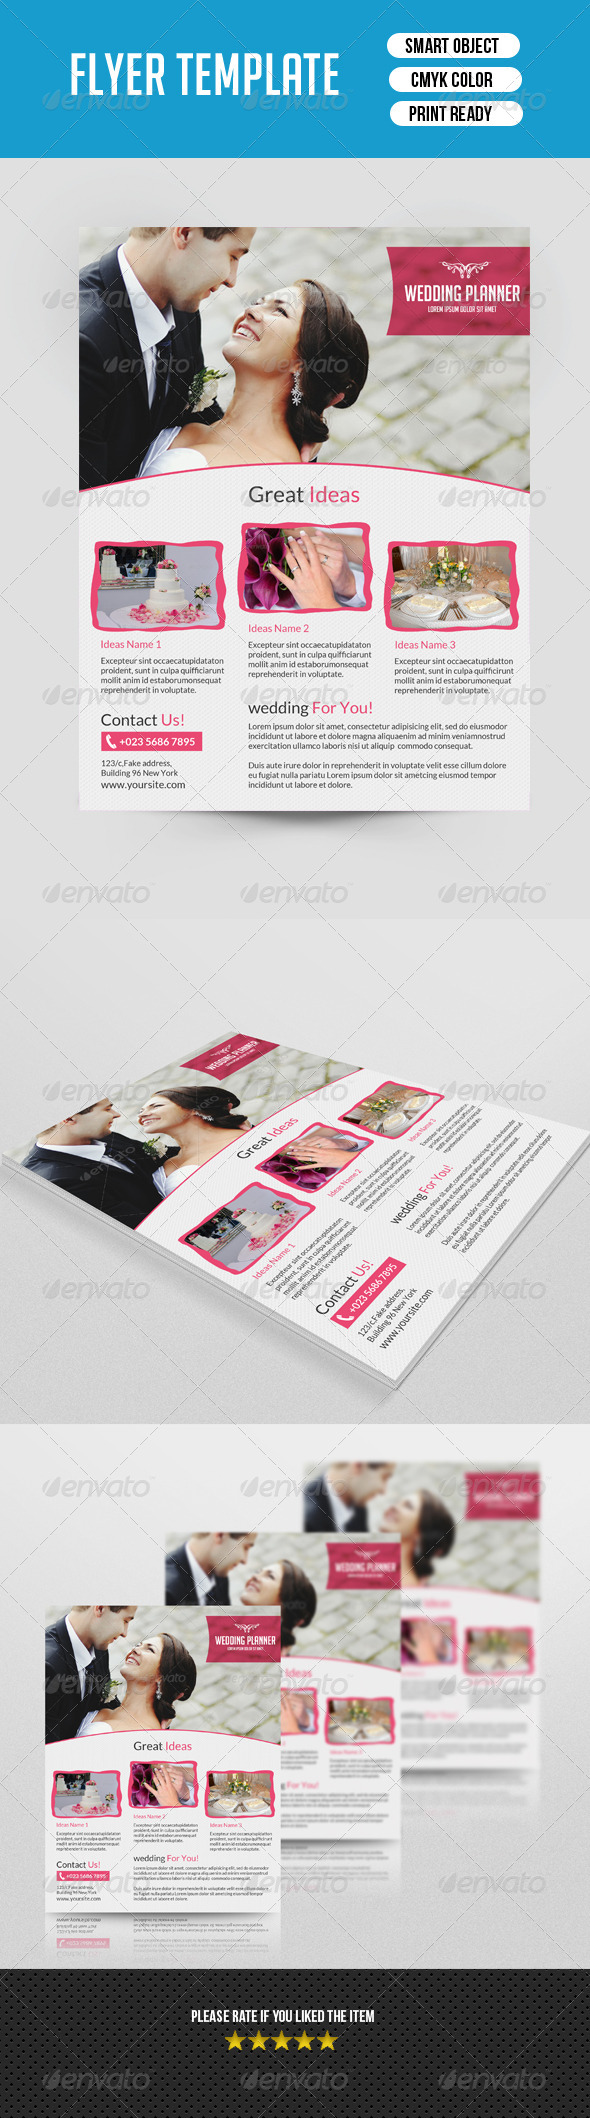 GraphicRiver Wedding Planner 7634541